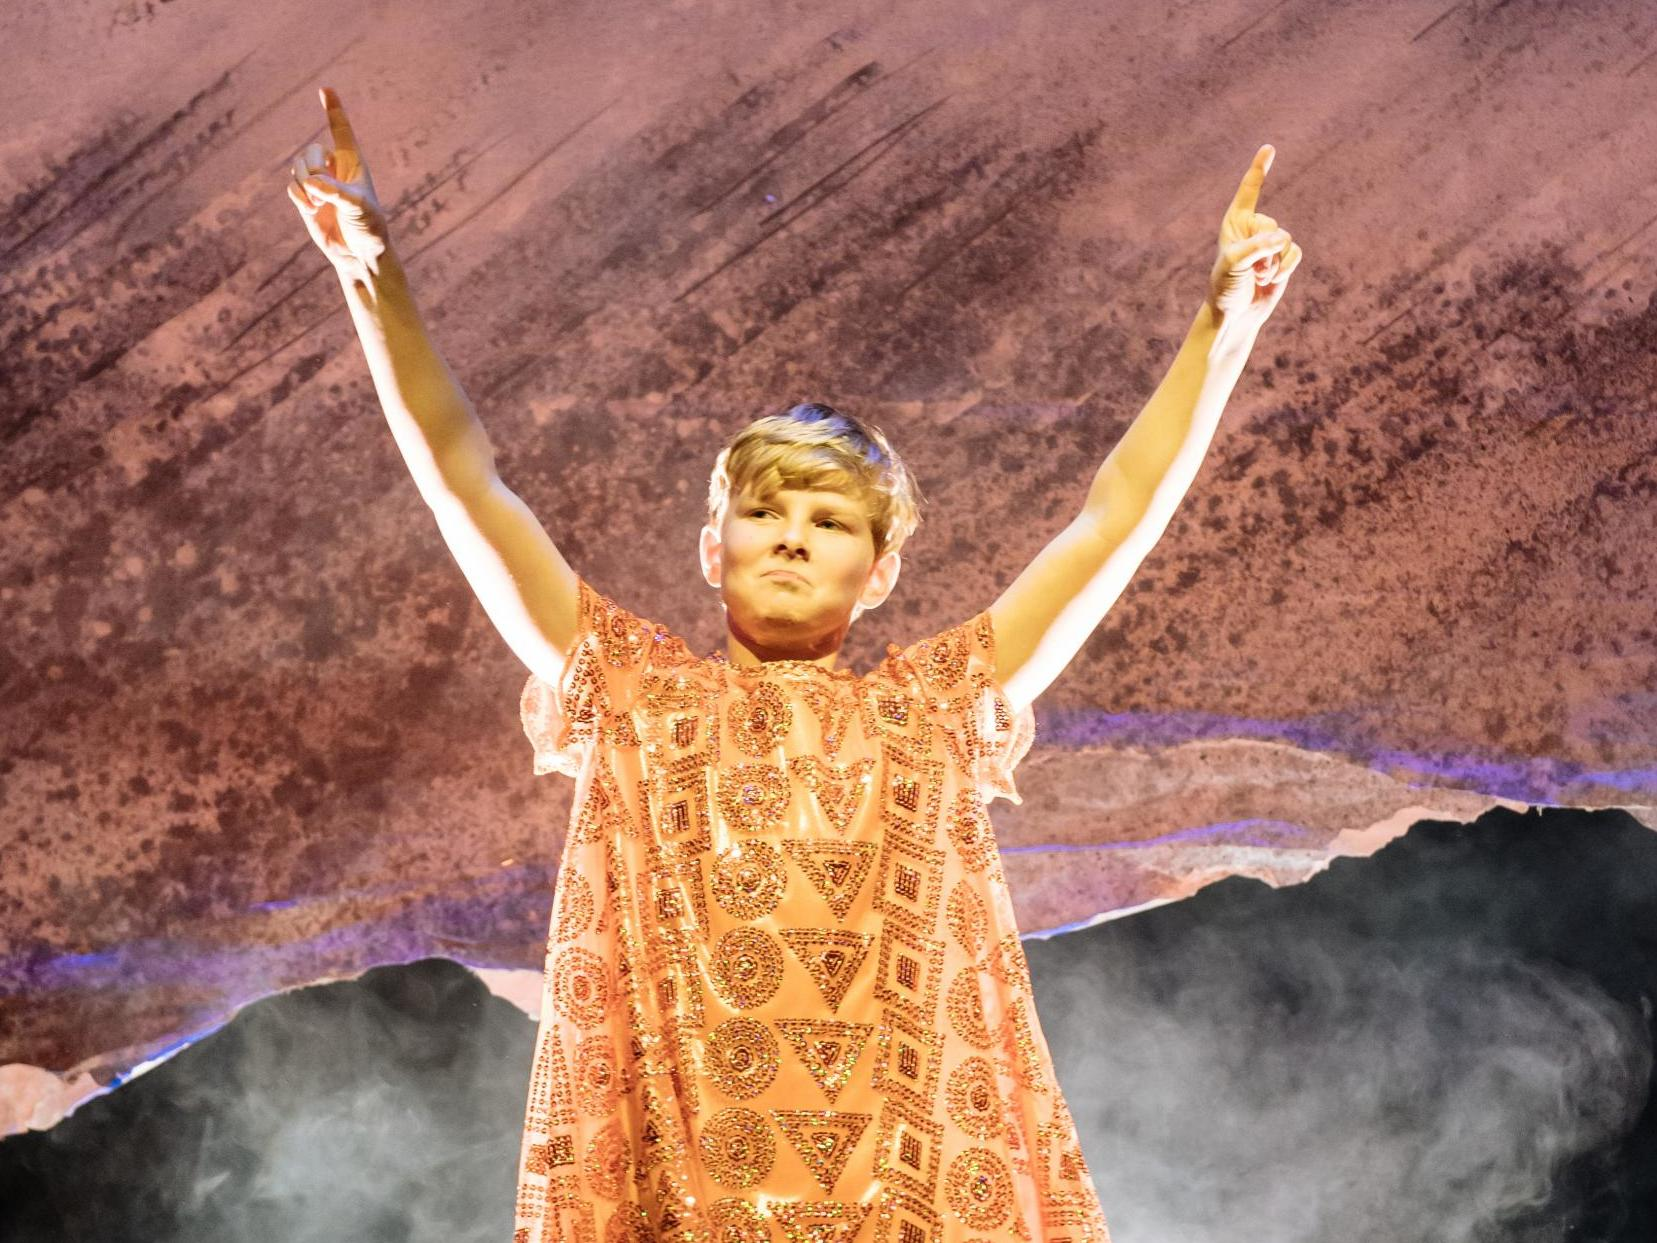 The Boy in the Dress review, Royal Shakespeare Theatre: A wonderfully warm-hearted and well-cast show